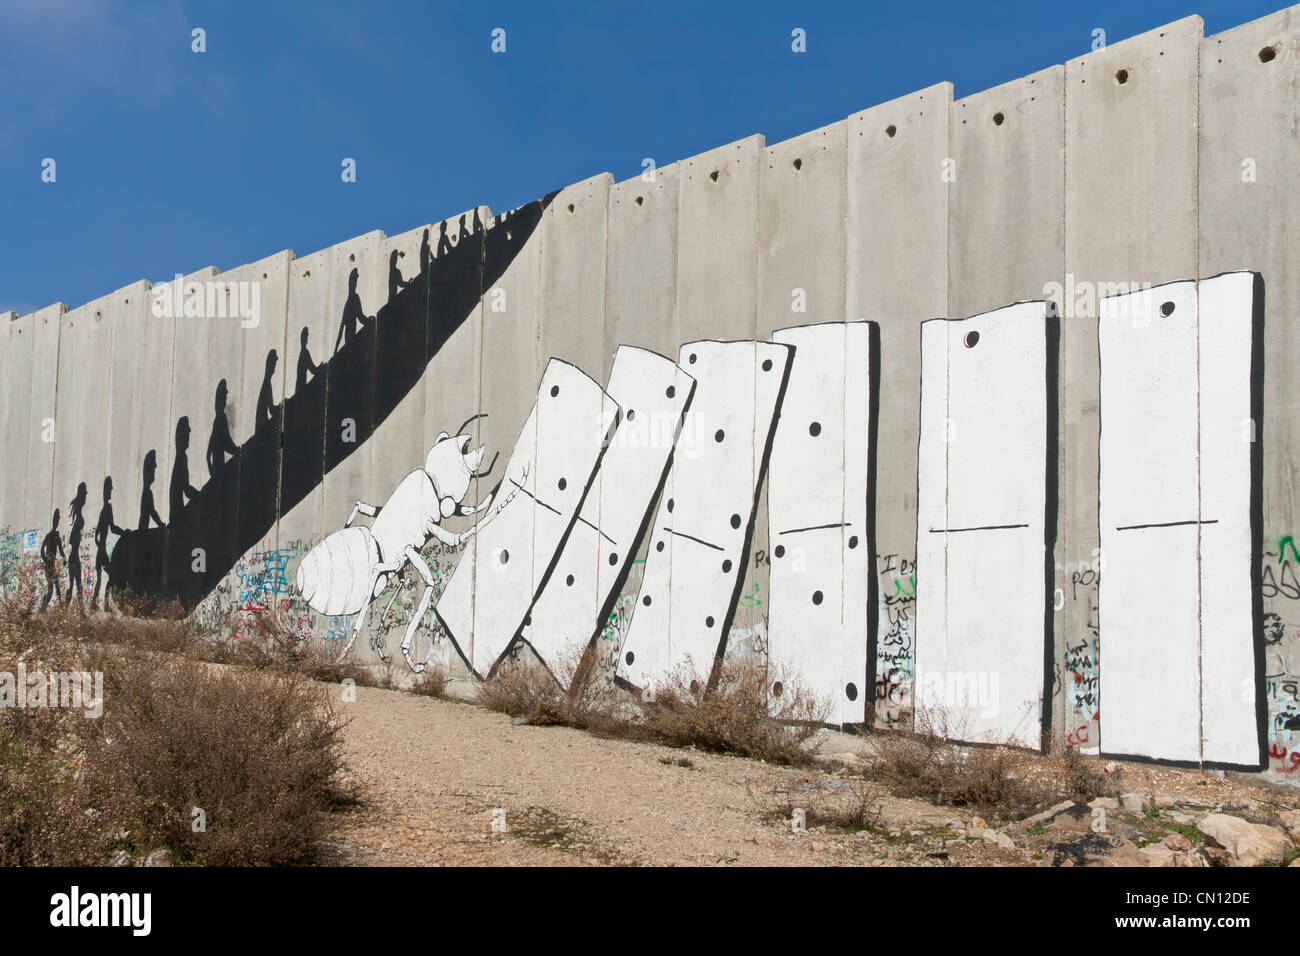 the separation wall in Bethlehem, Palestine - Stock Image